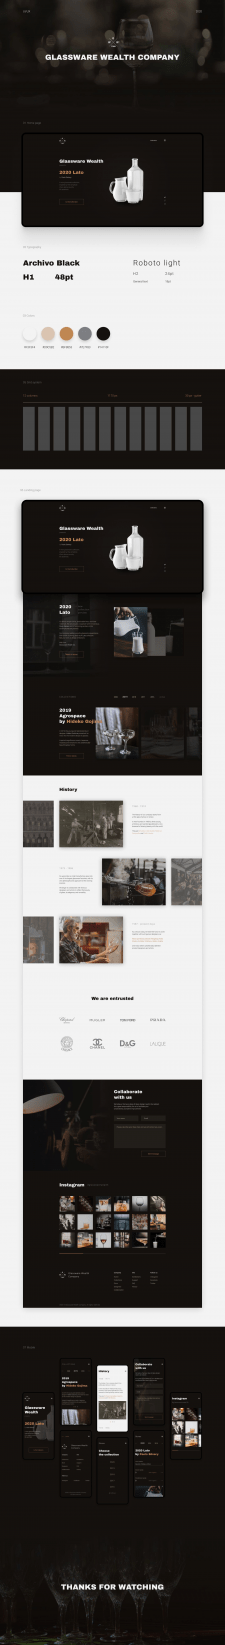 Glassware Wealth Company - Landing page